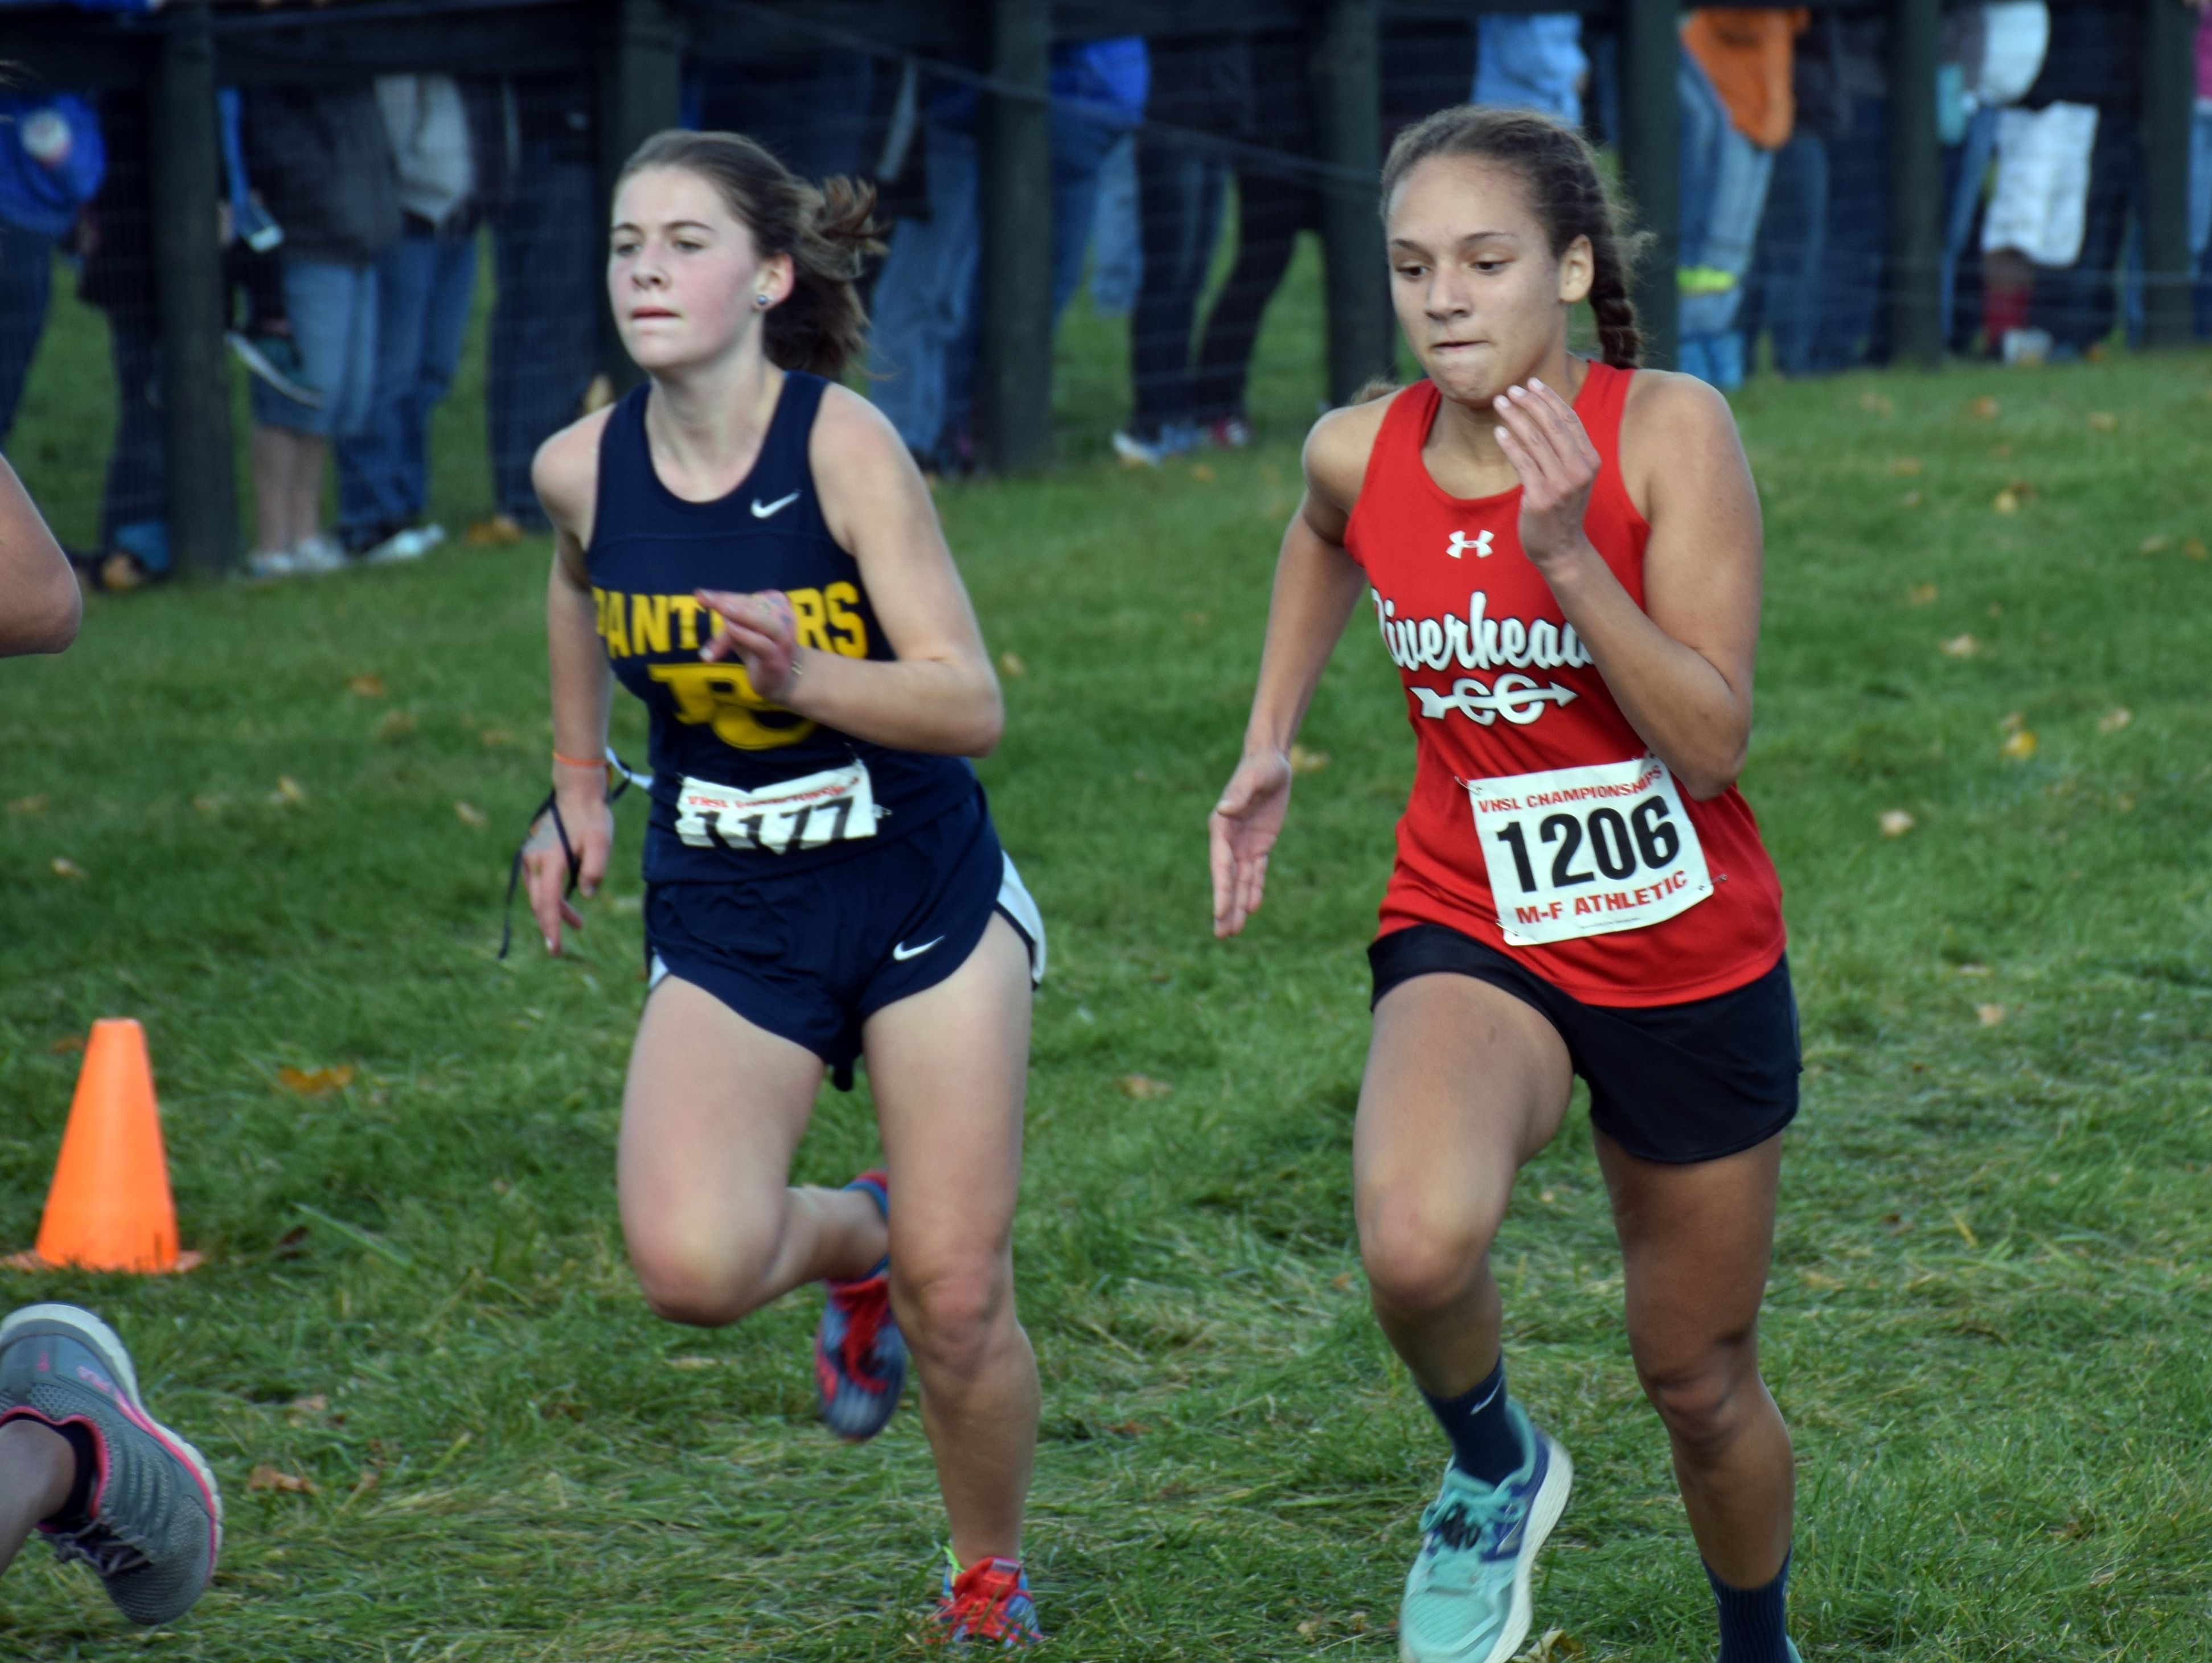 Riverheeads' Veronica Ferguson, right, races Rappahannock County's Skylar Culbertson to the finish line of the Group 1A girls race at the VHSL cross country championships at Great Meadow in The Plains on Friday, Nov. 11, 2016.